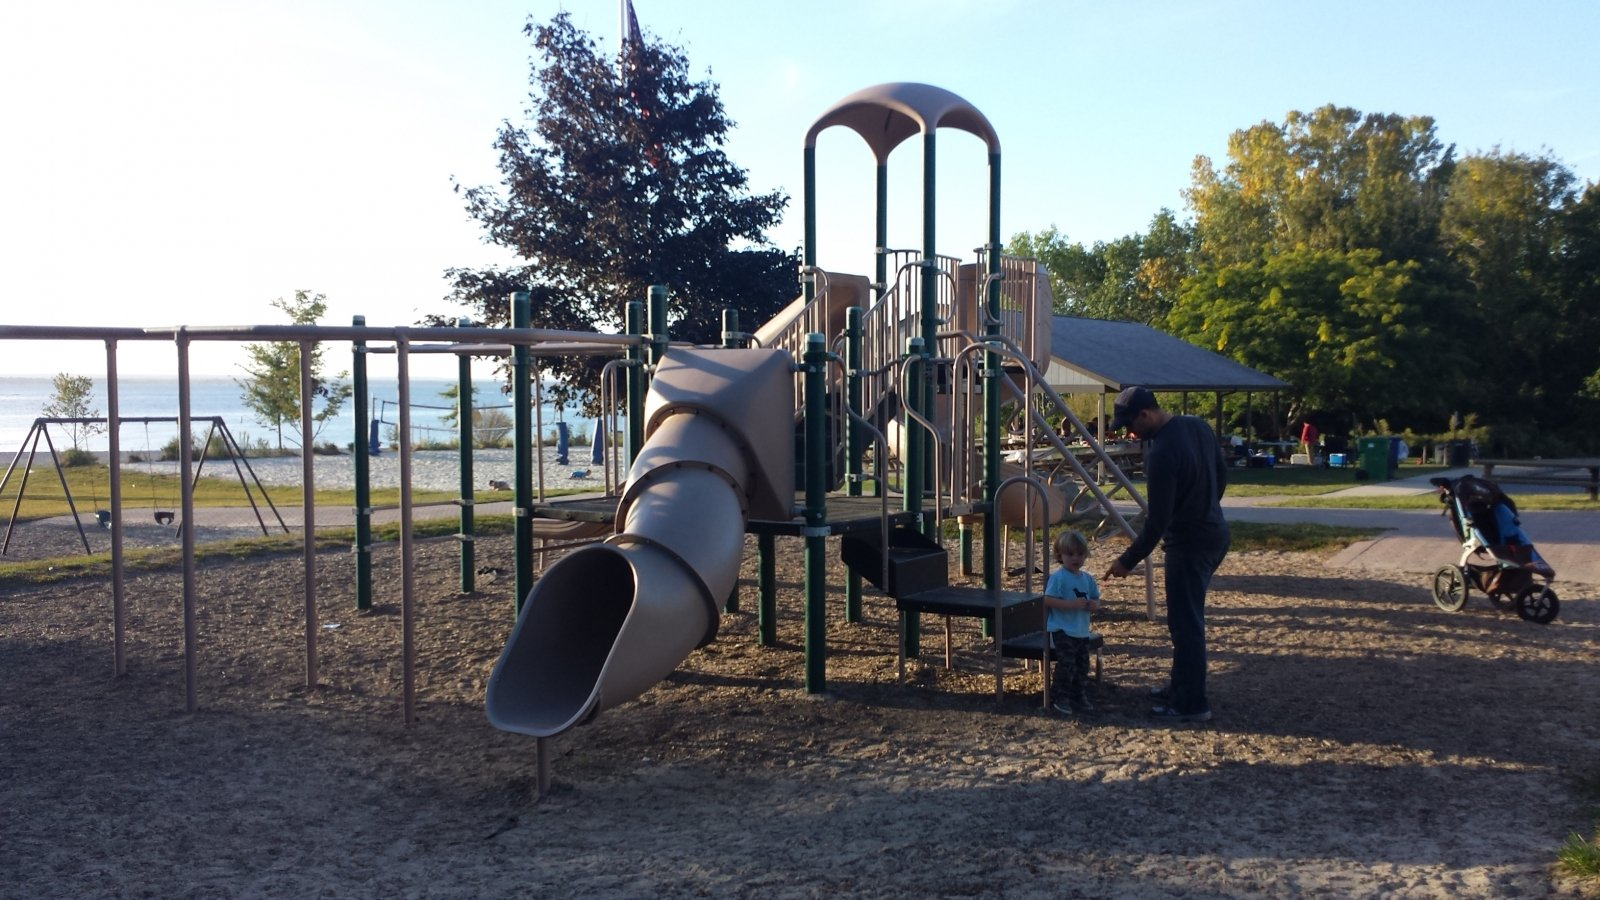 16 great playgrounds in rhode island rhode island monthly